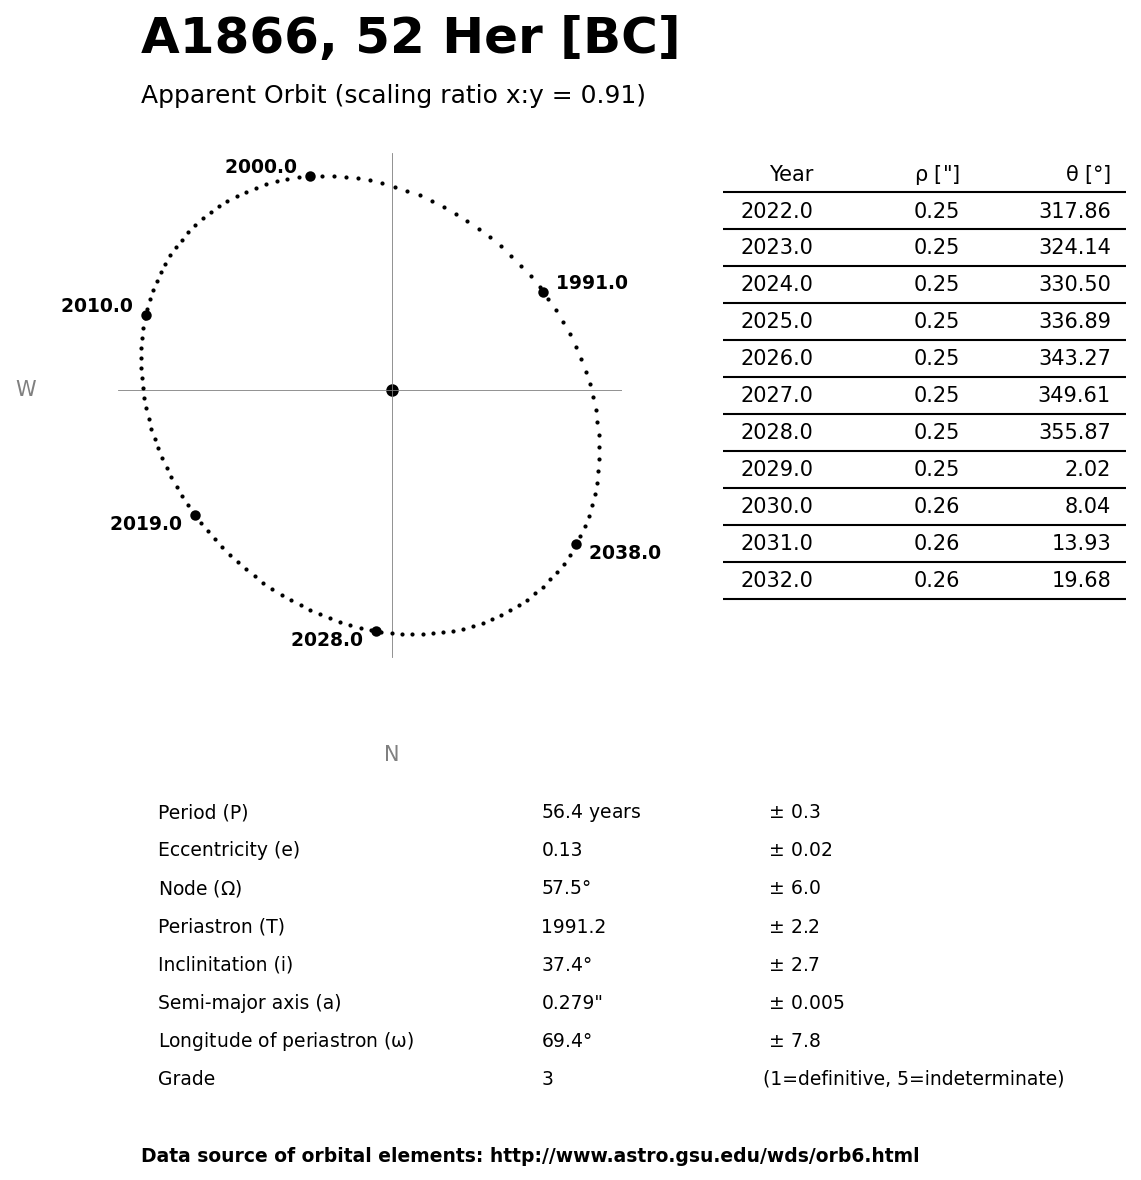 ../images/binary-star-orbits/A1866-BC-orbit.jpg